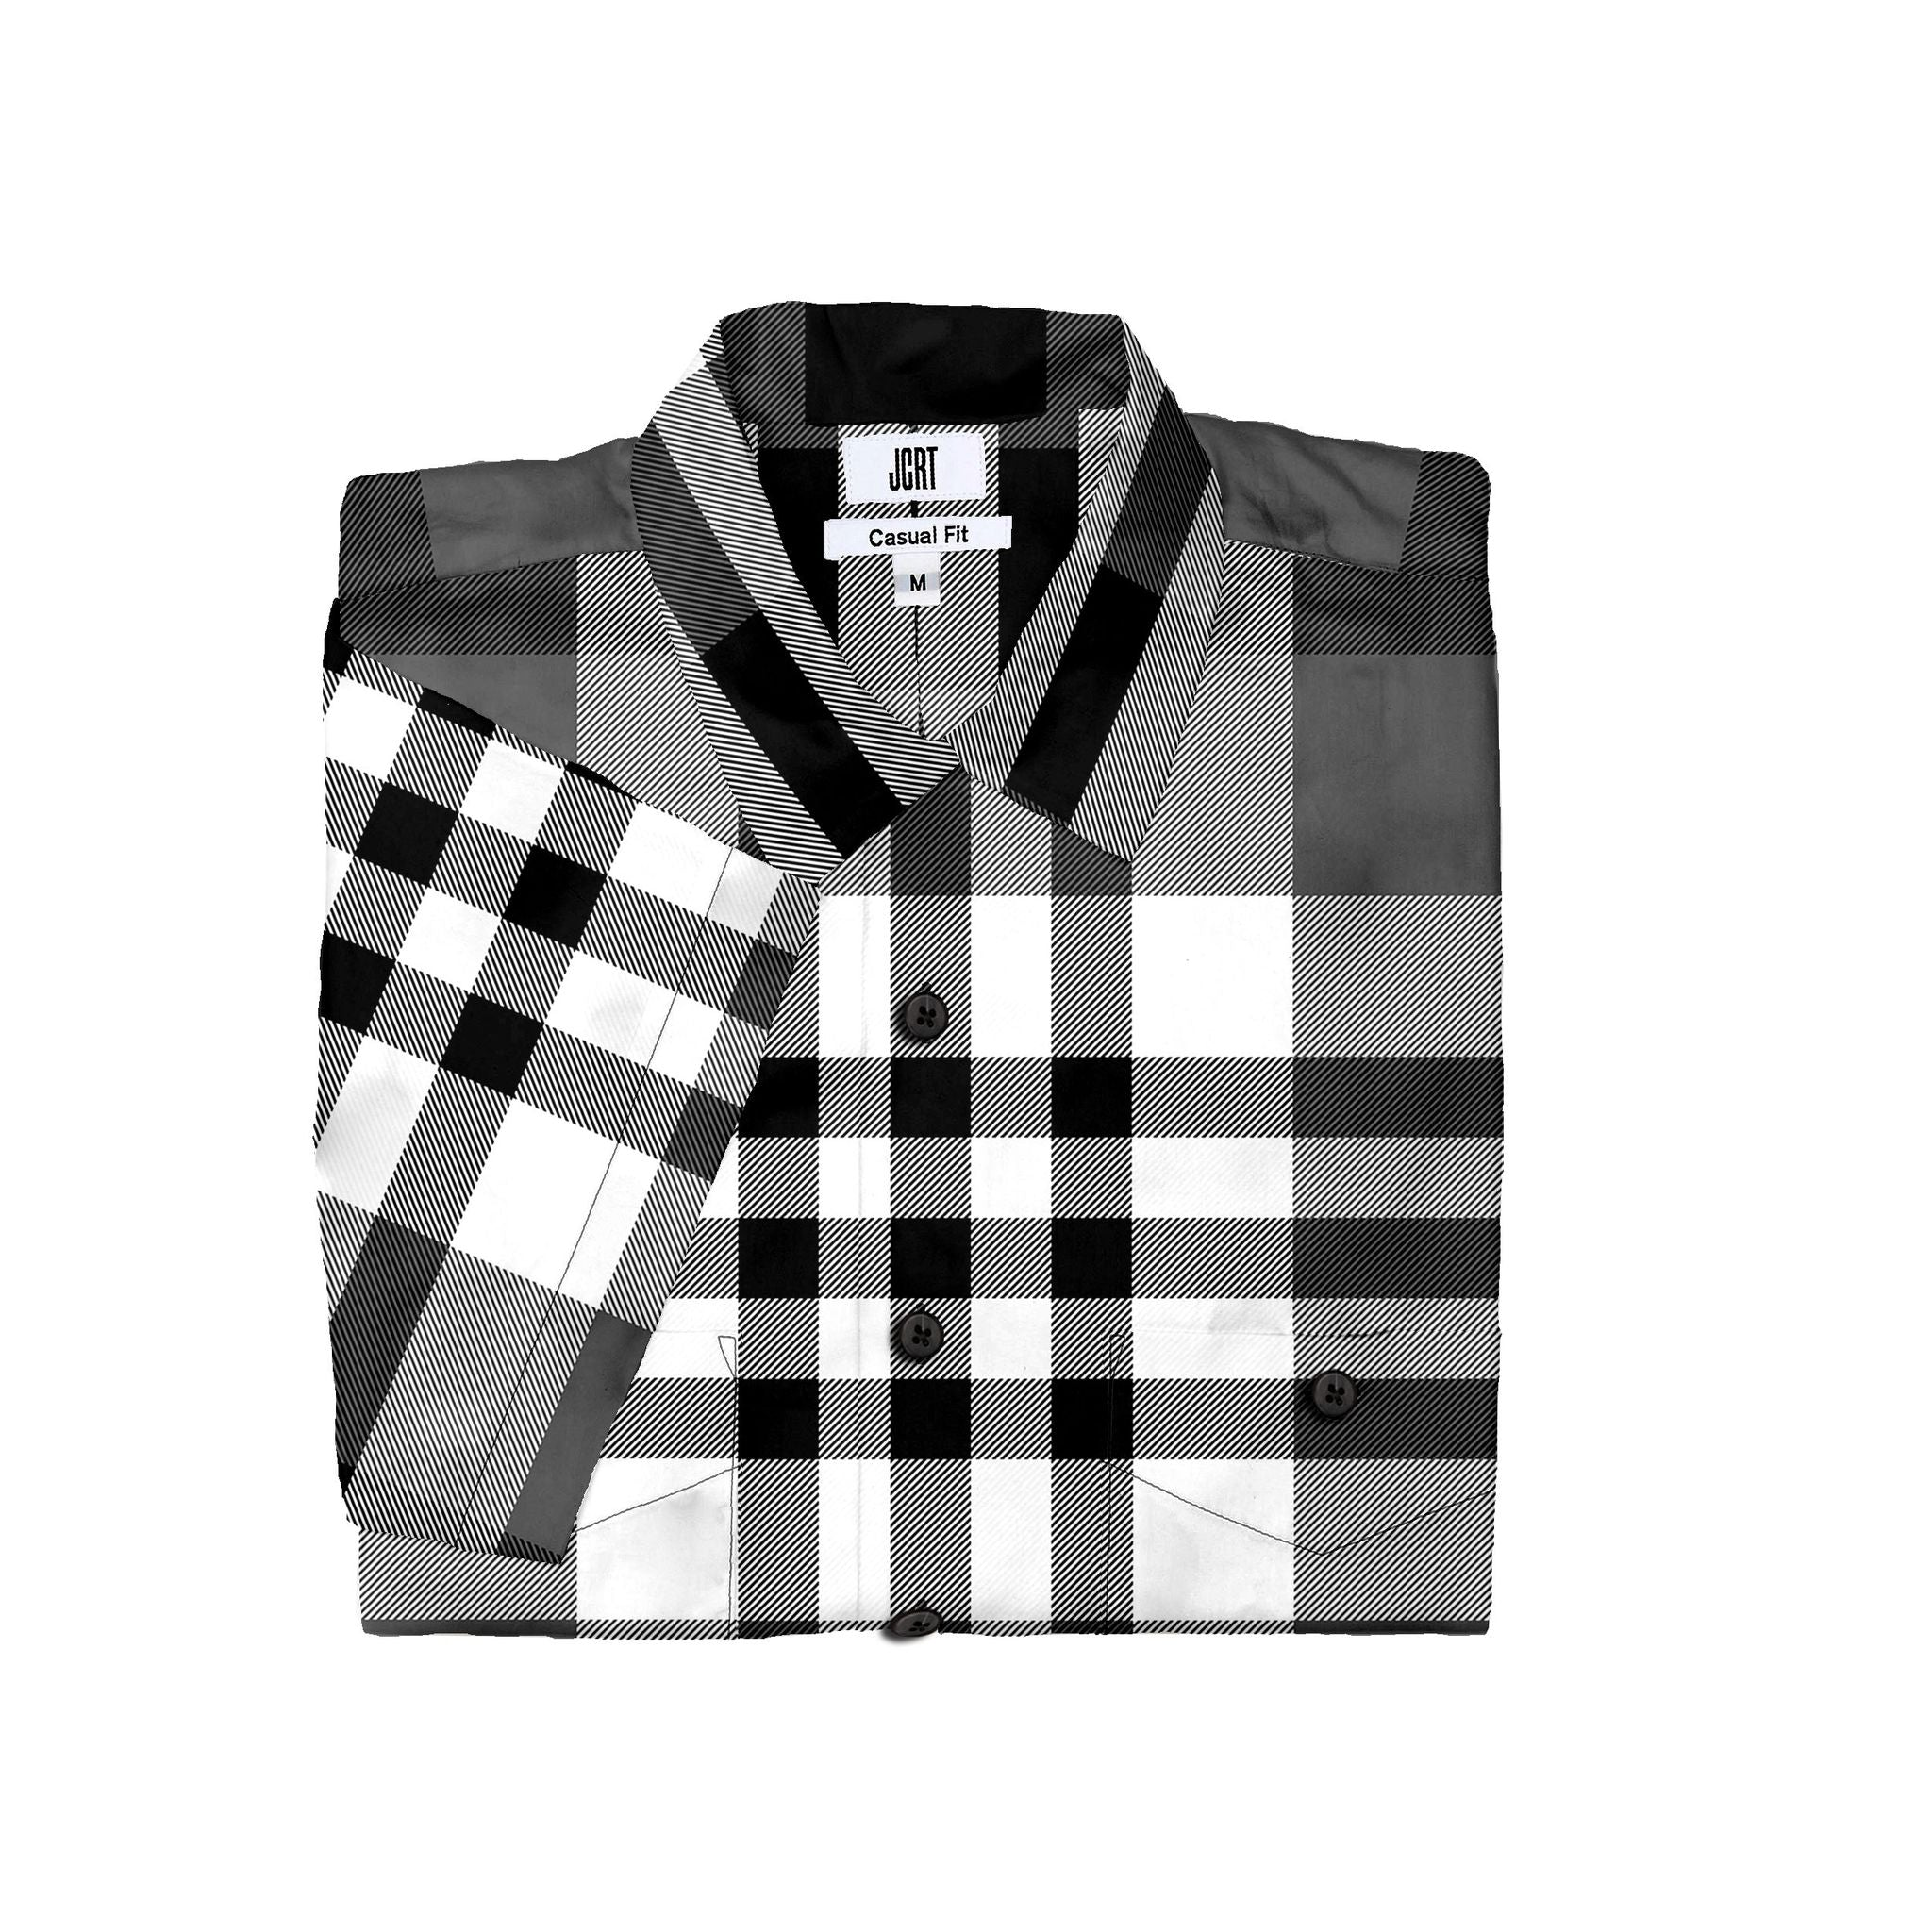 The Specials Plaid Short Sleeve Shirt